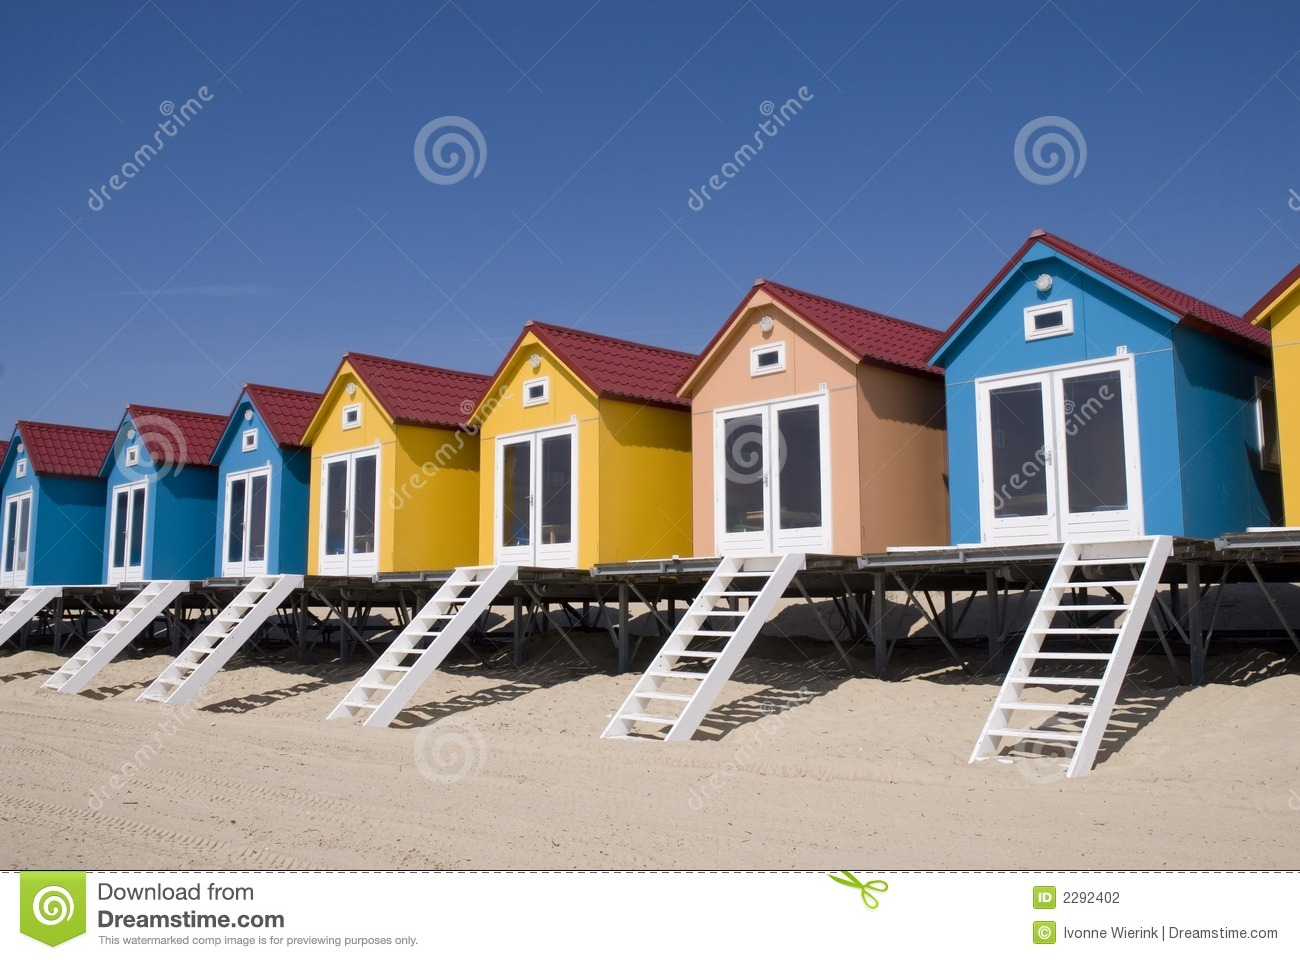 Pictures of houses on the beach - Royalty Free Stock Photo Download Blue Little Beach Houses